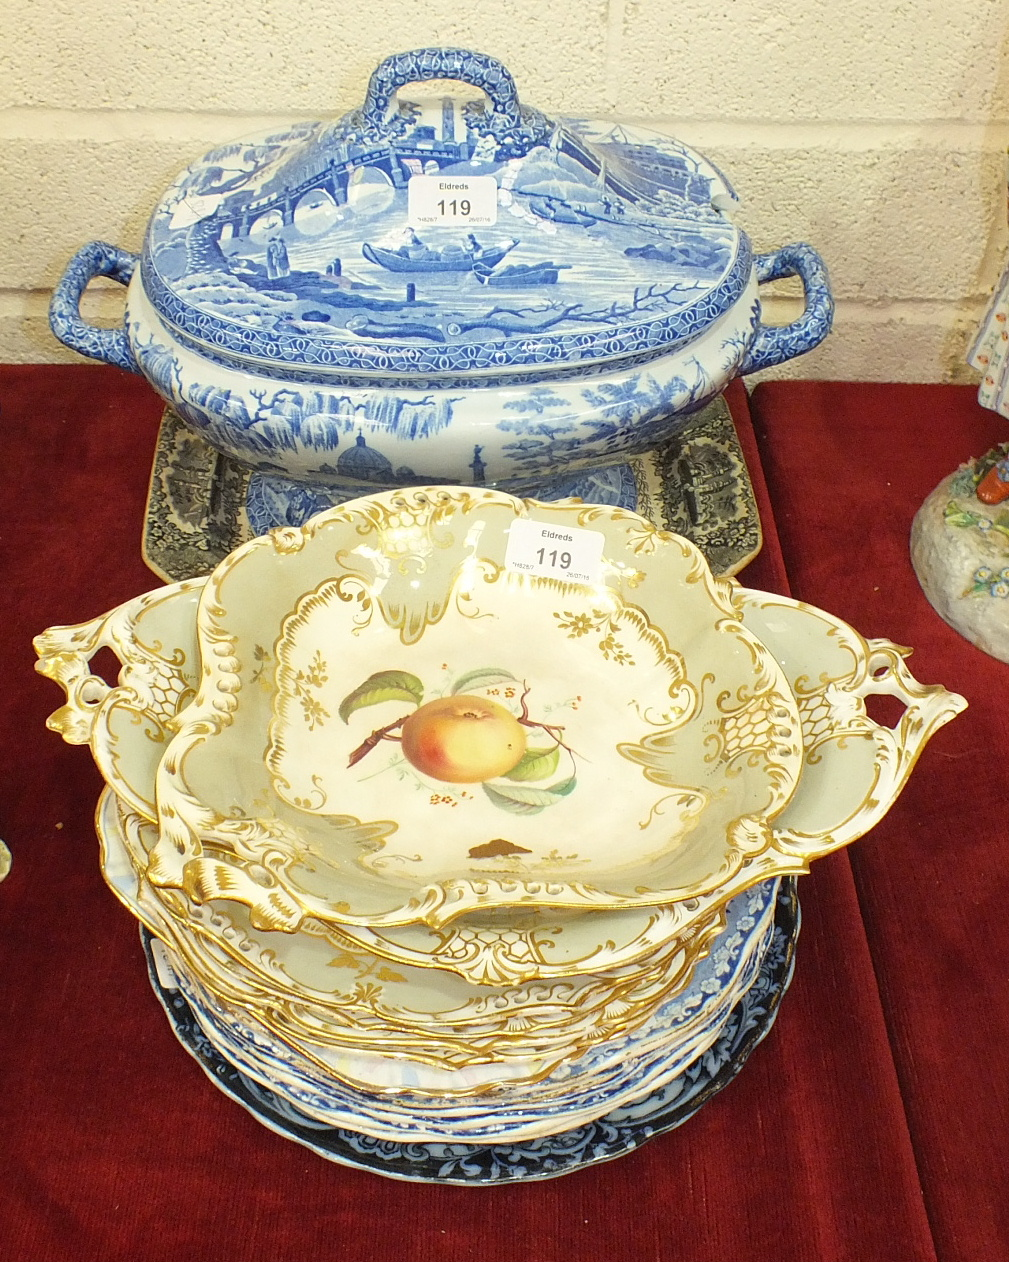 An early-19th century Spode transfer-printed pottery soup tureen and cover, various printed plates